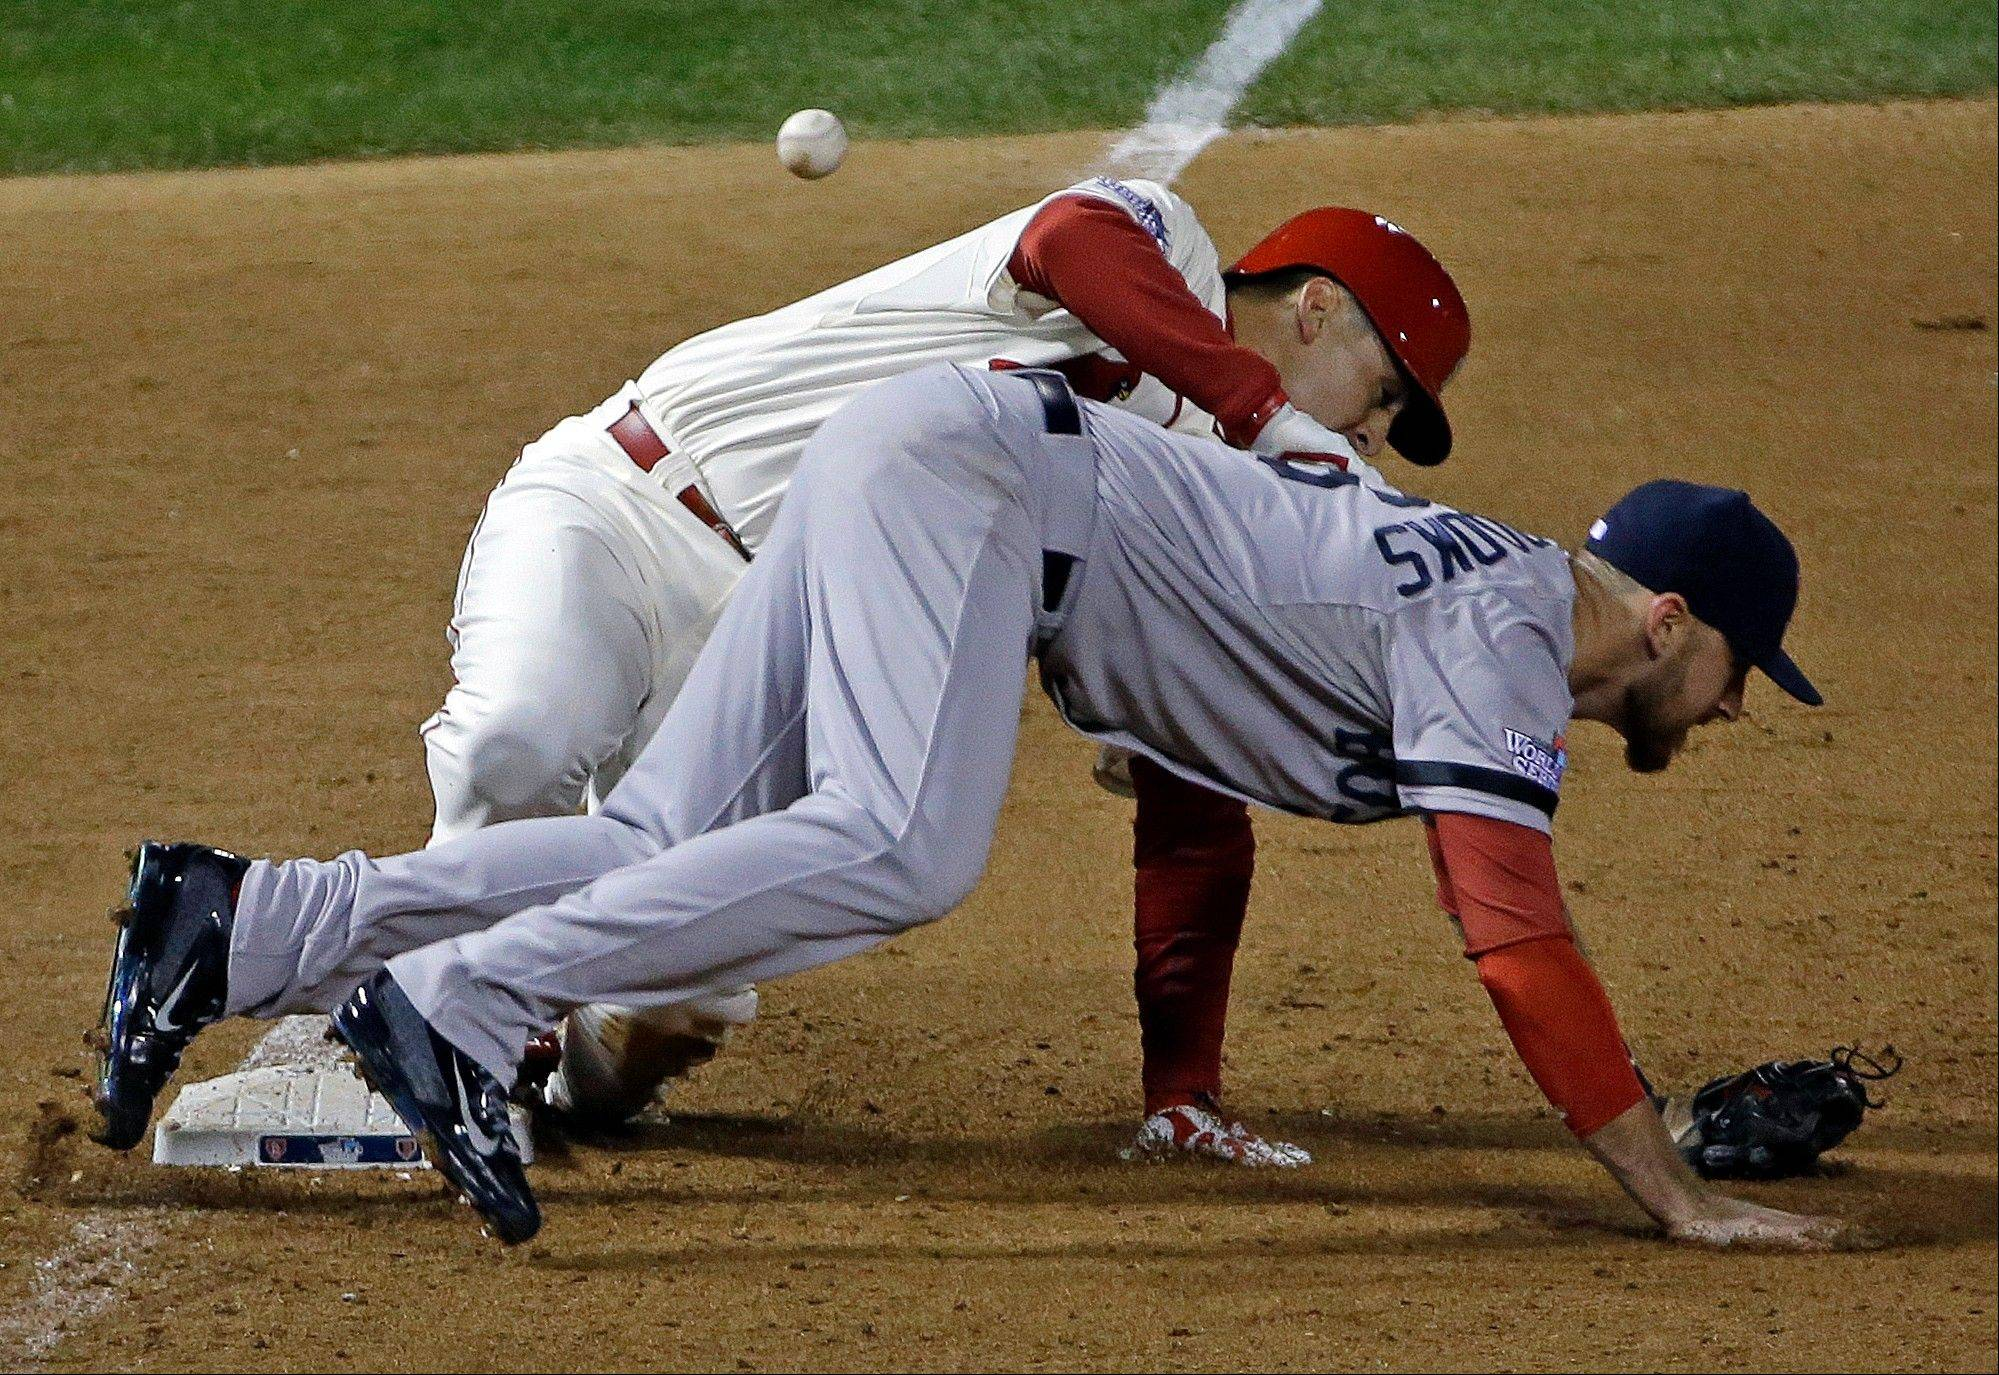 St. Louis Cardinals' Allen Craig gets tangled with Boston Red Sox's Will Middlebrooks during the ninth inning of Game 3. Middlebrooks was called for obstruction on the play and Craig went in to score the game-winning run.